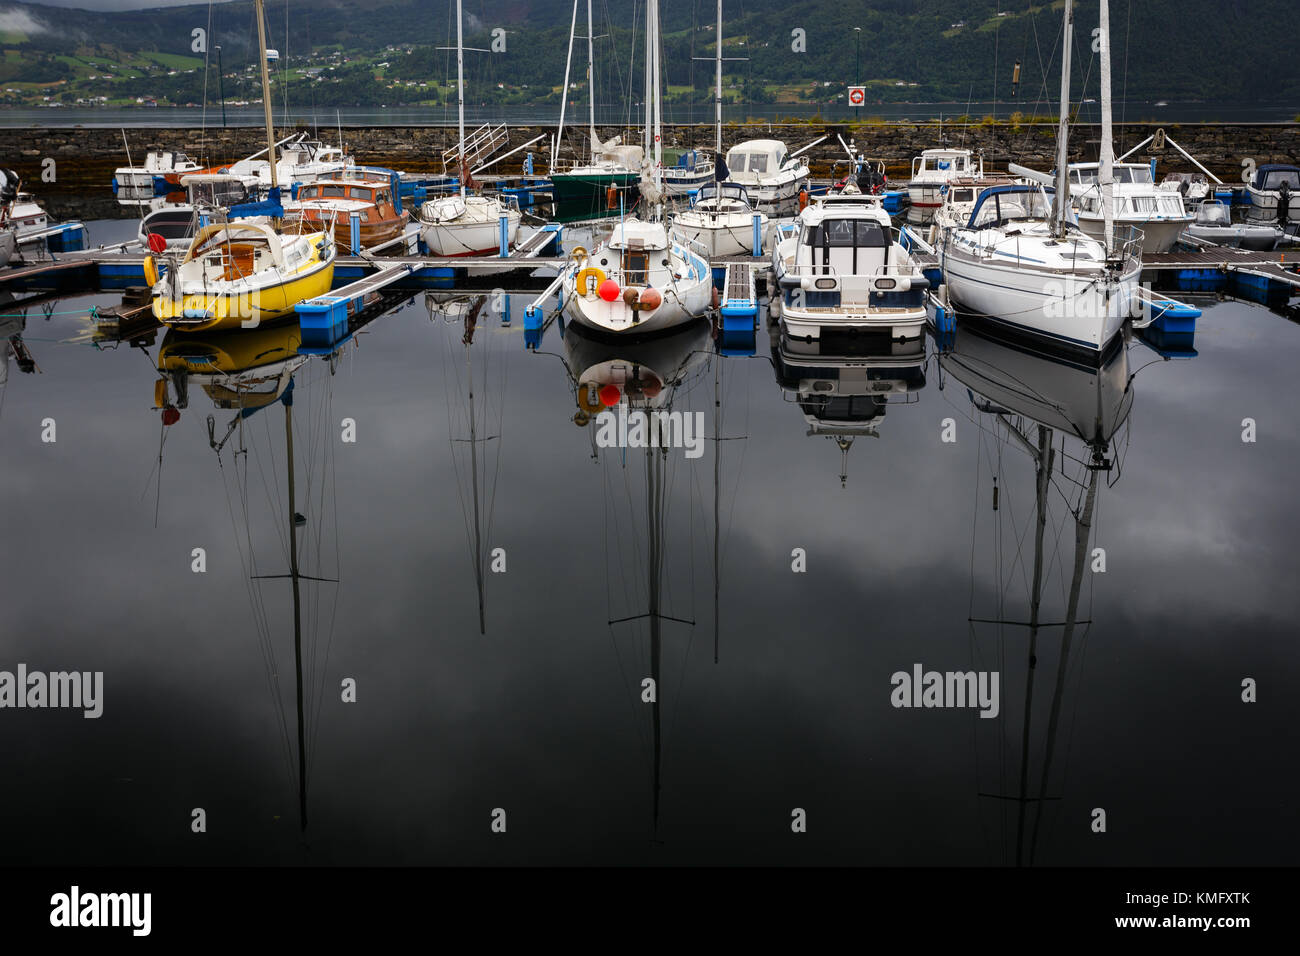 Yacht reflection in lake, Norway - Stock Image